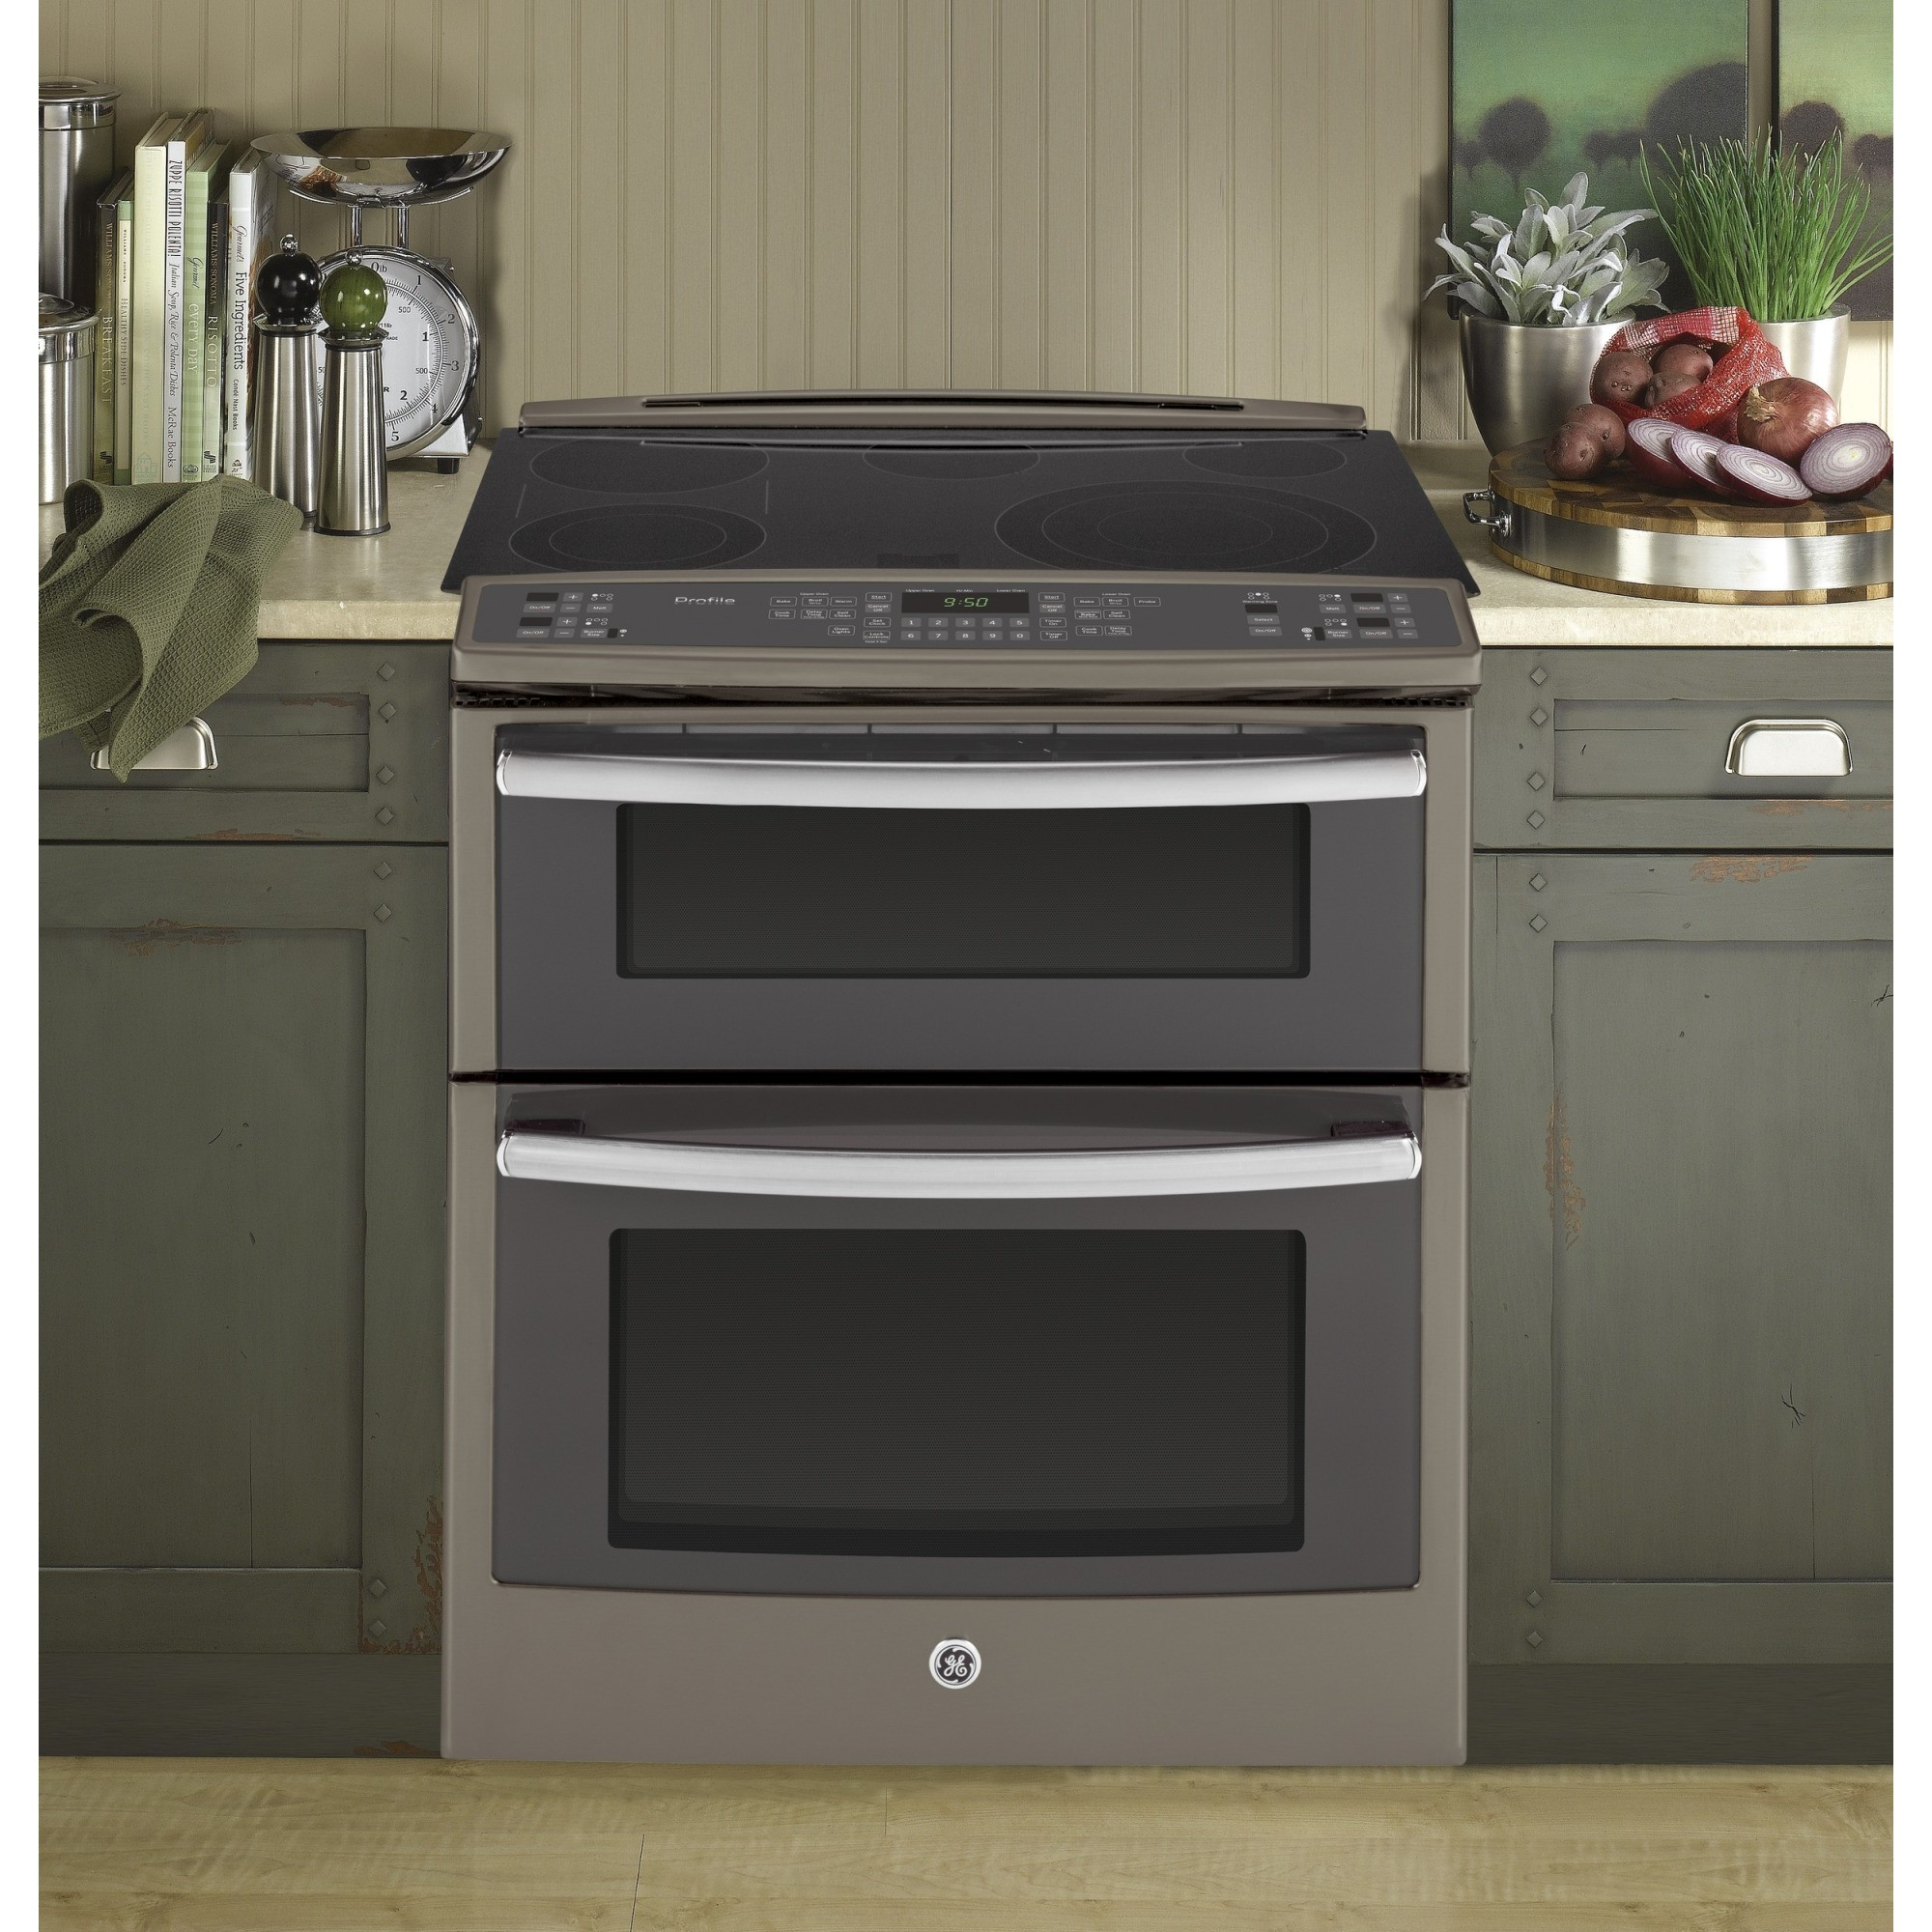 Home Depot Maytag Range besides Sharp Smd2470as likewise Kitchens French Old World together with Rectangular Kitchen Designs moreover Photo. on black kitchen vent hood